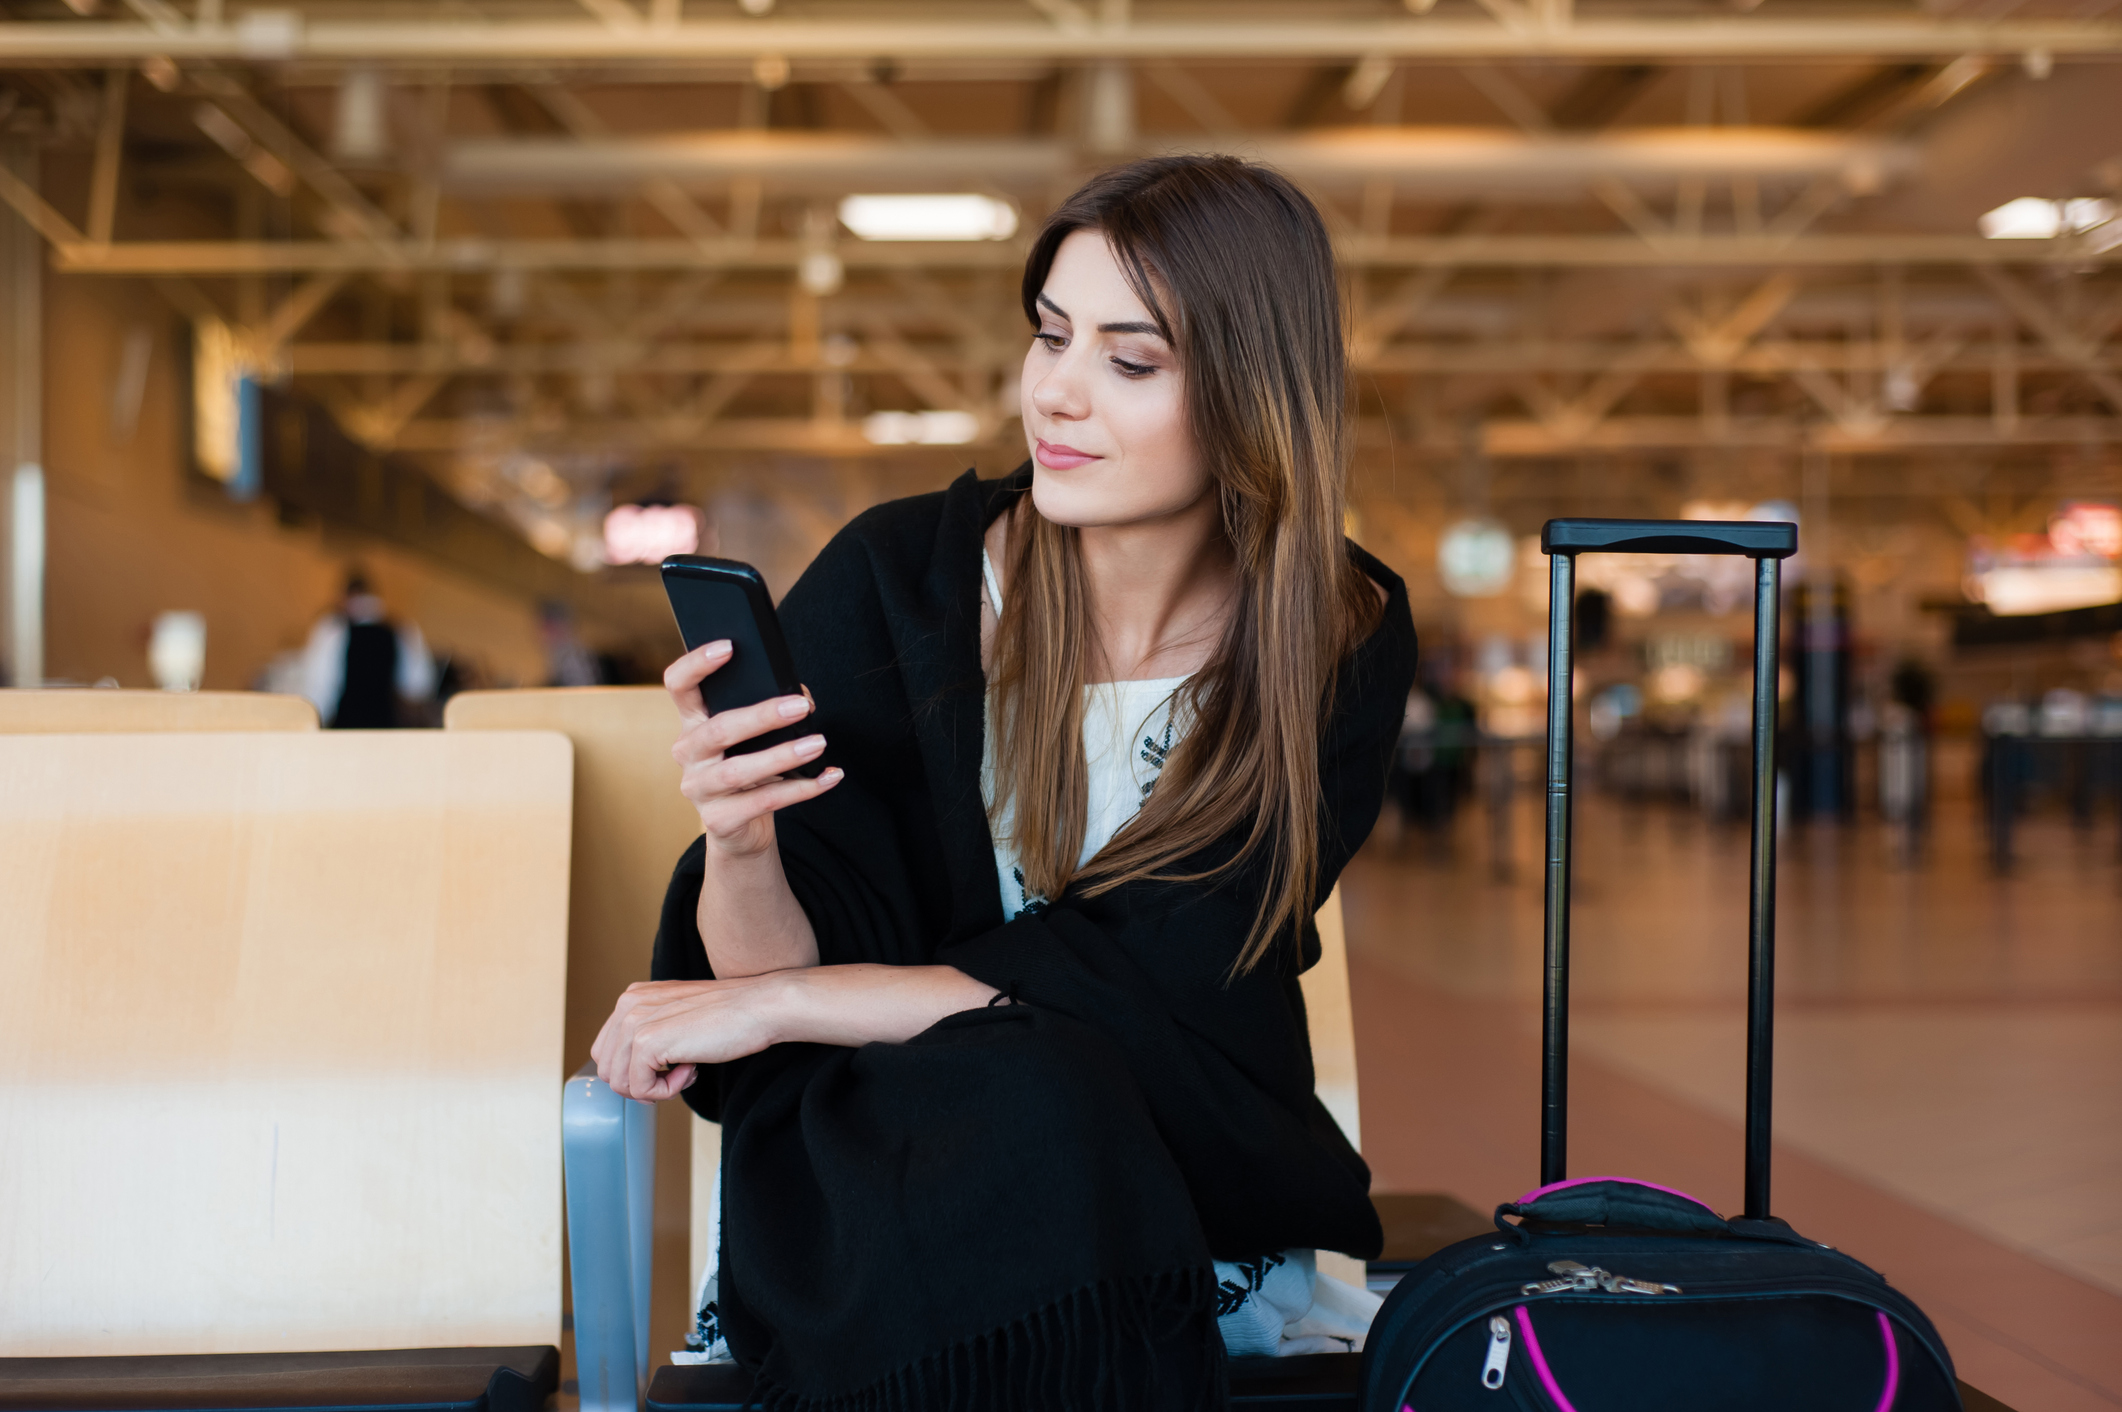 woman wearing black cashmere travel sweater at airport